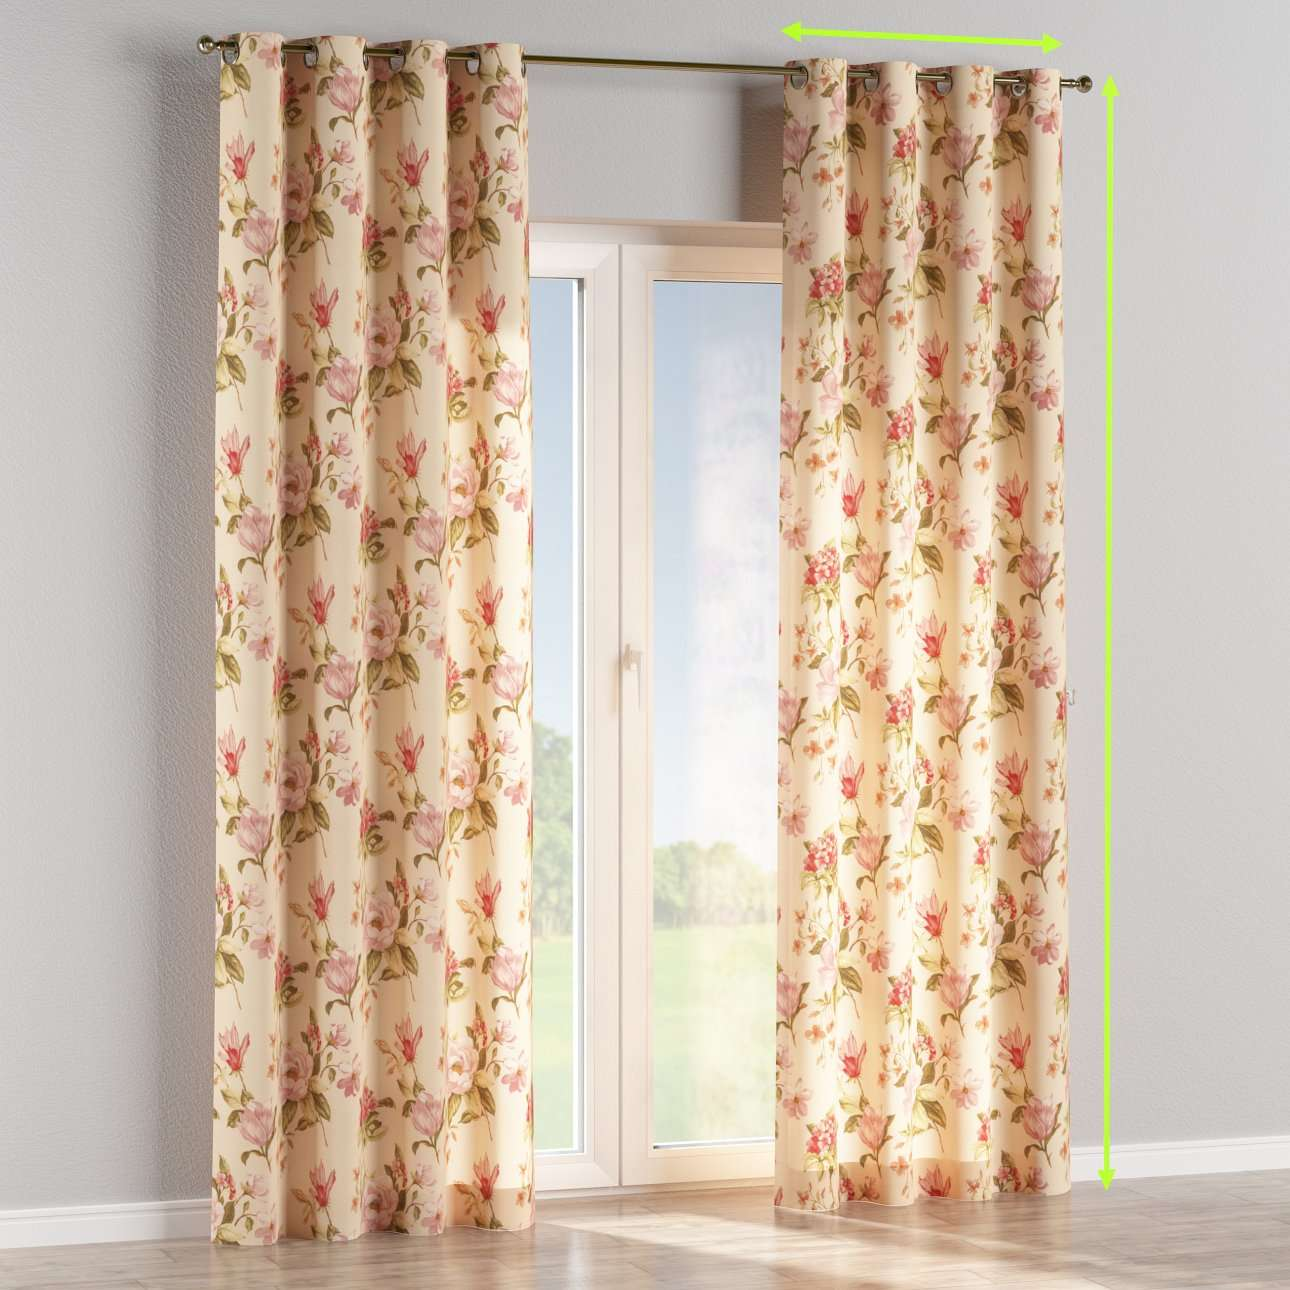 Eyelet lined curtains in collection Londres, fabric: 123-05